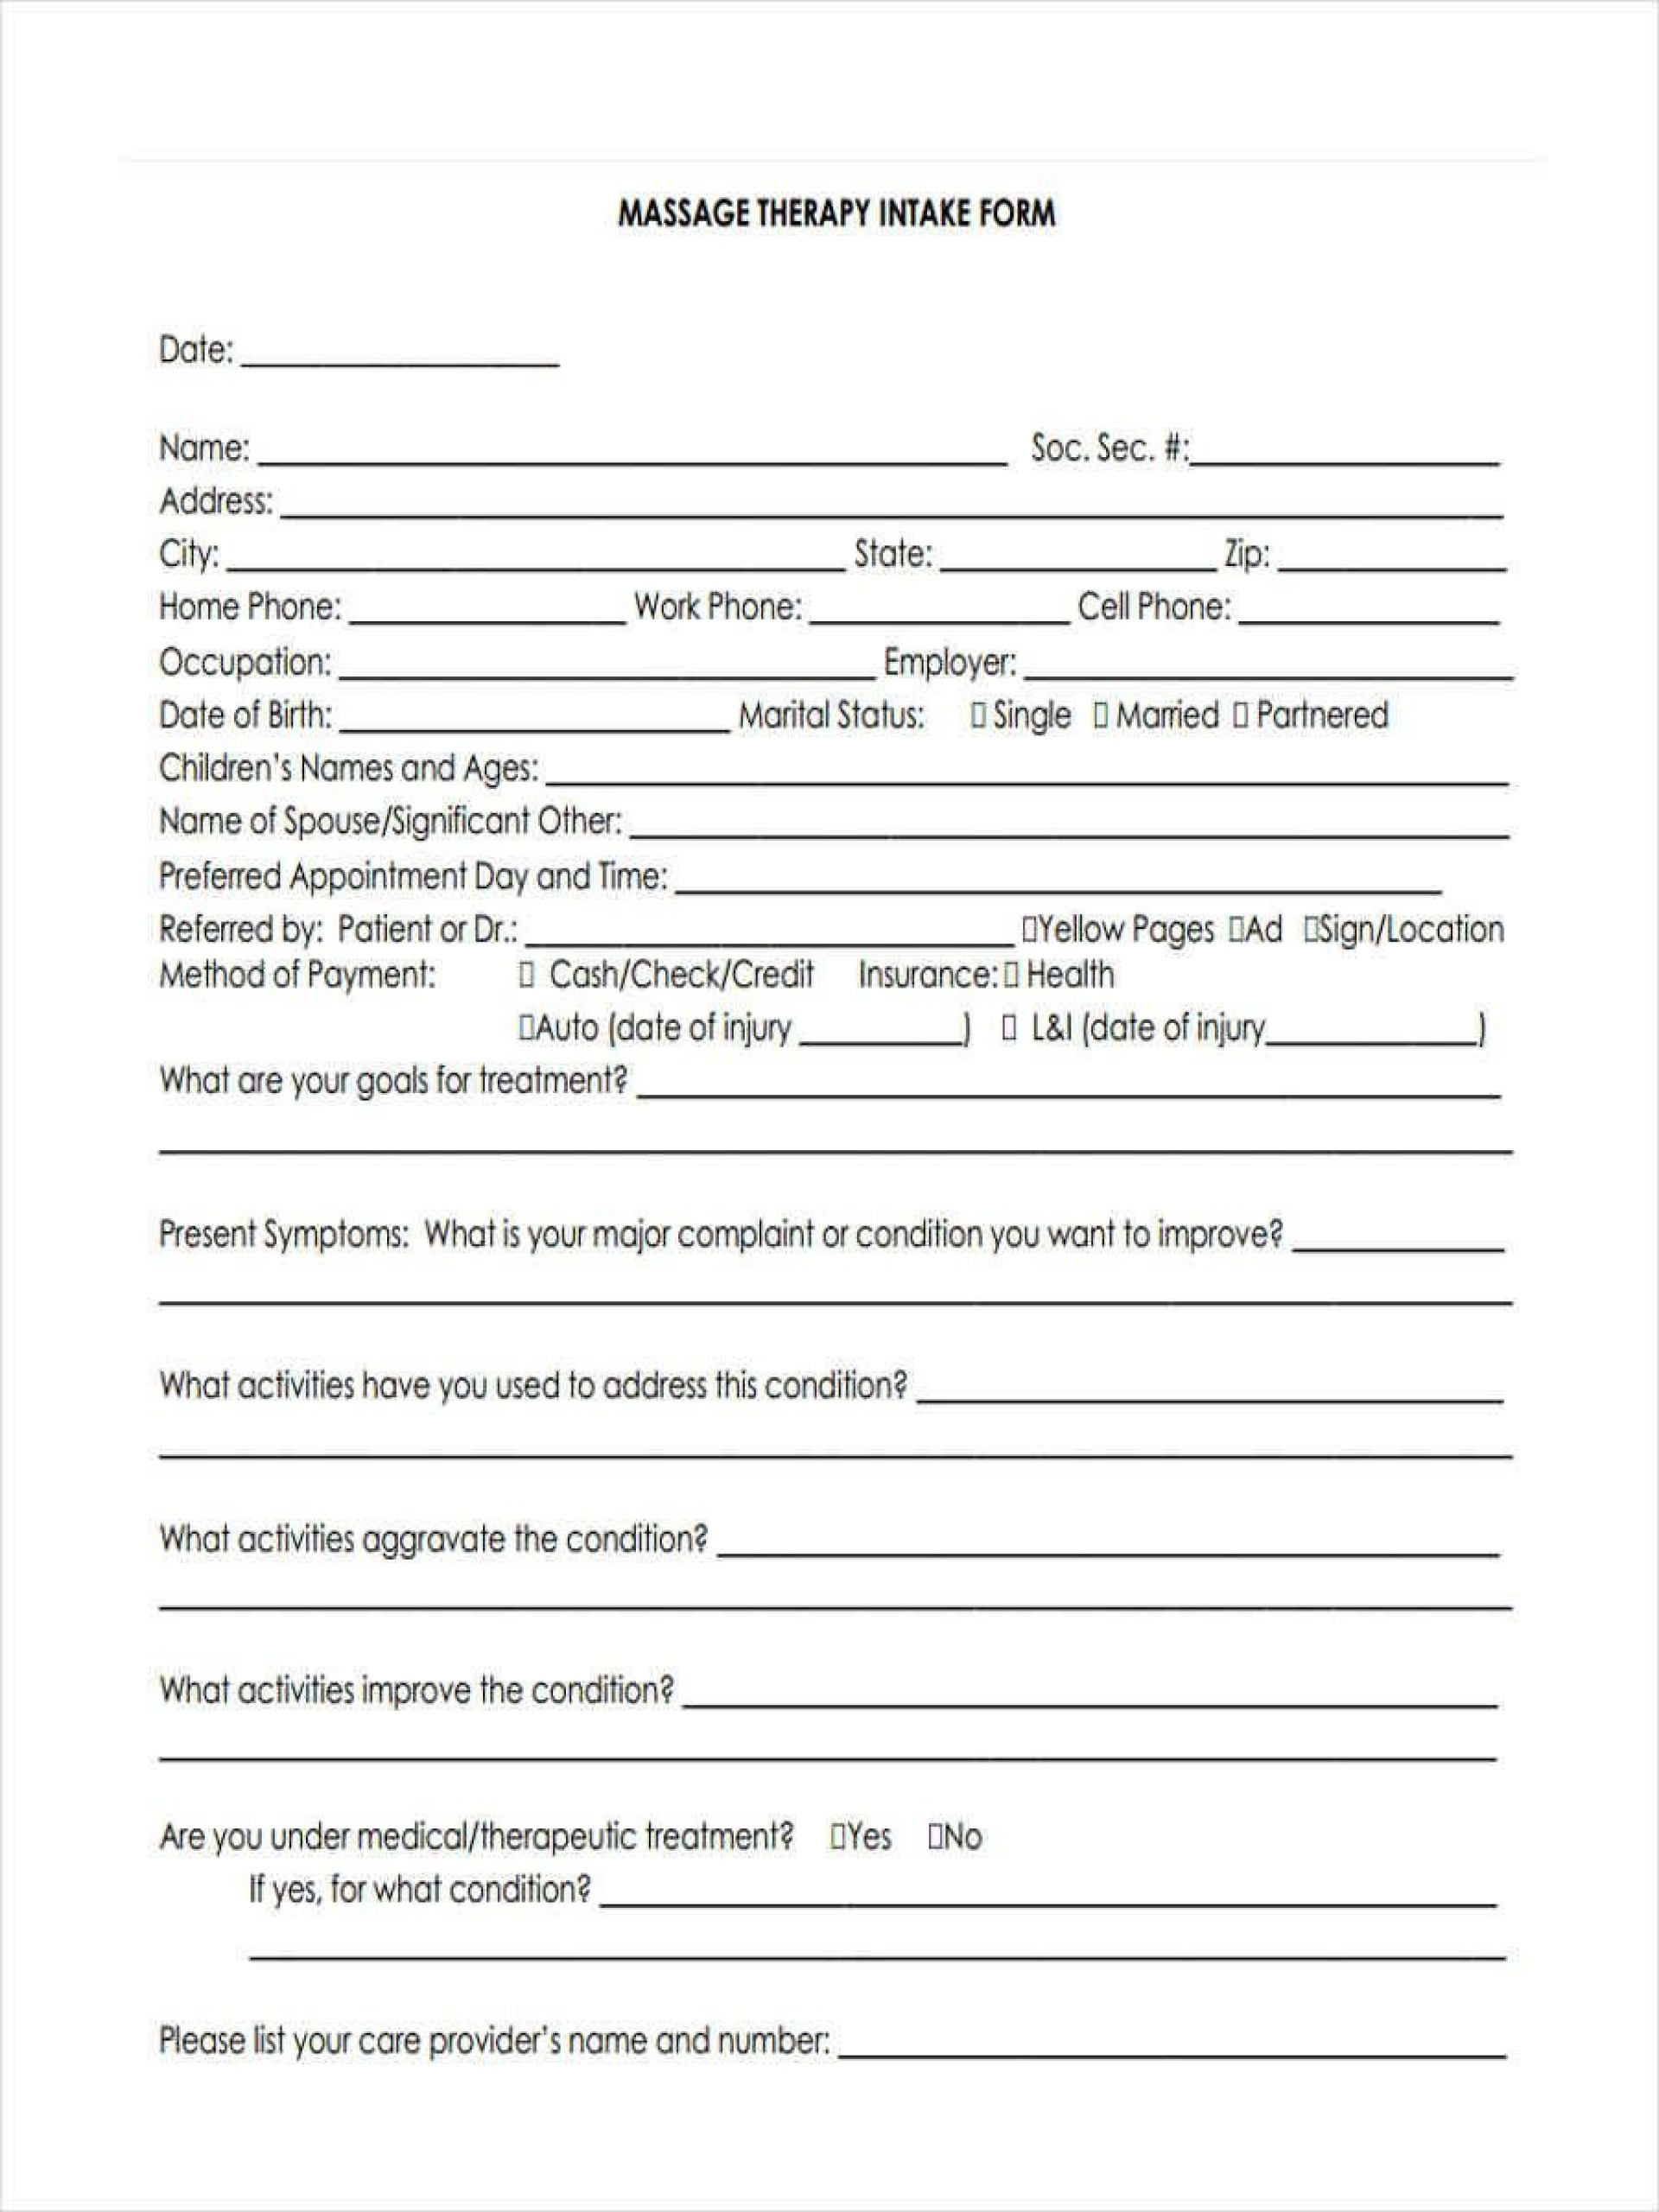 005 Excellent Free Patient Intake Form Template Photo  Massage Client New1920